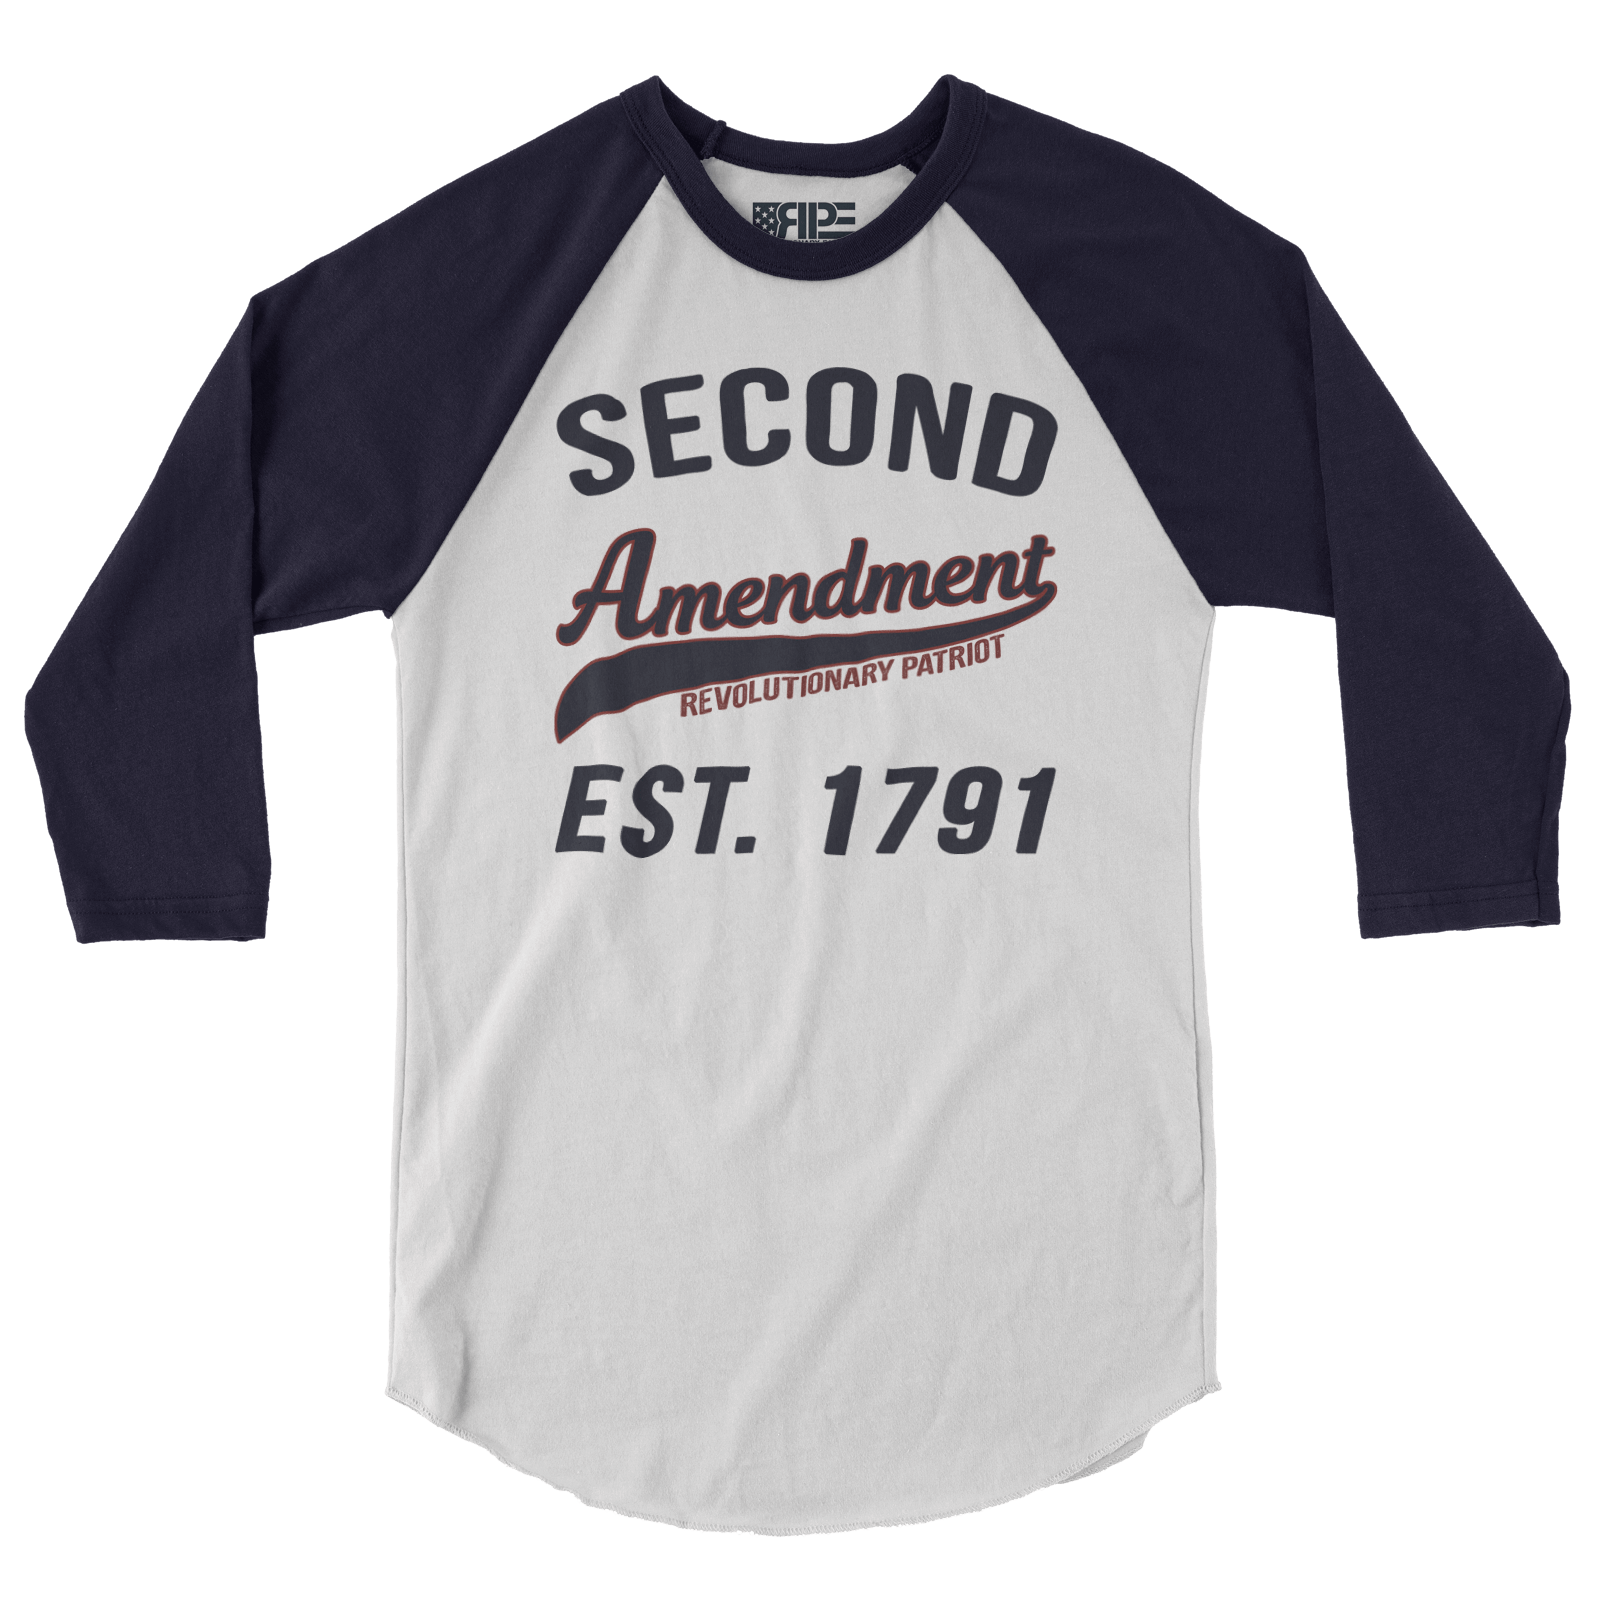 Second Amendment Collegiate 3/4 Sleeve (White / Navy)